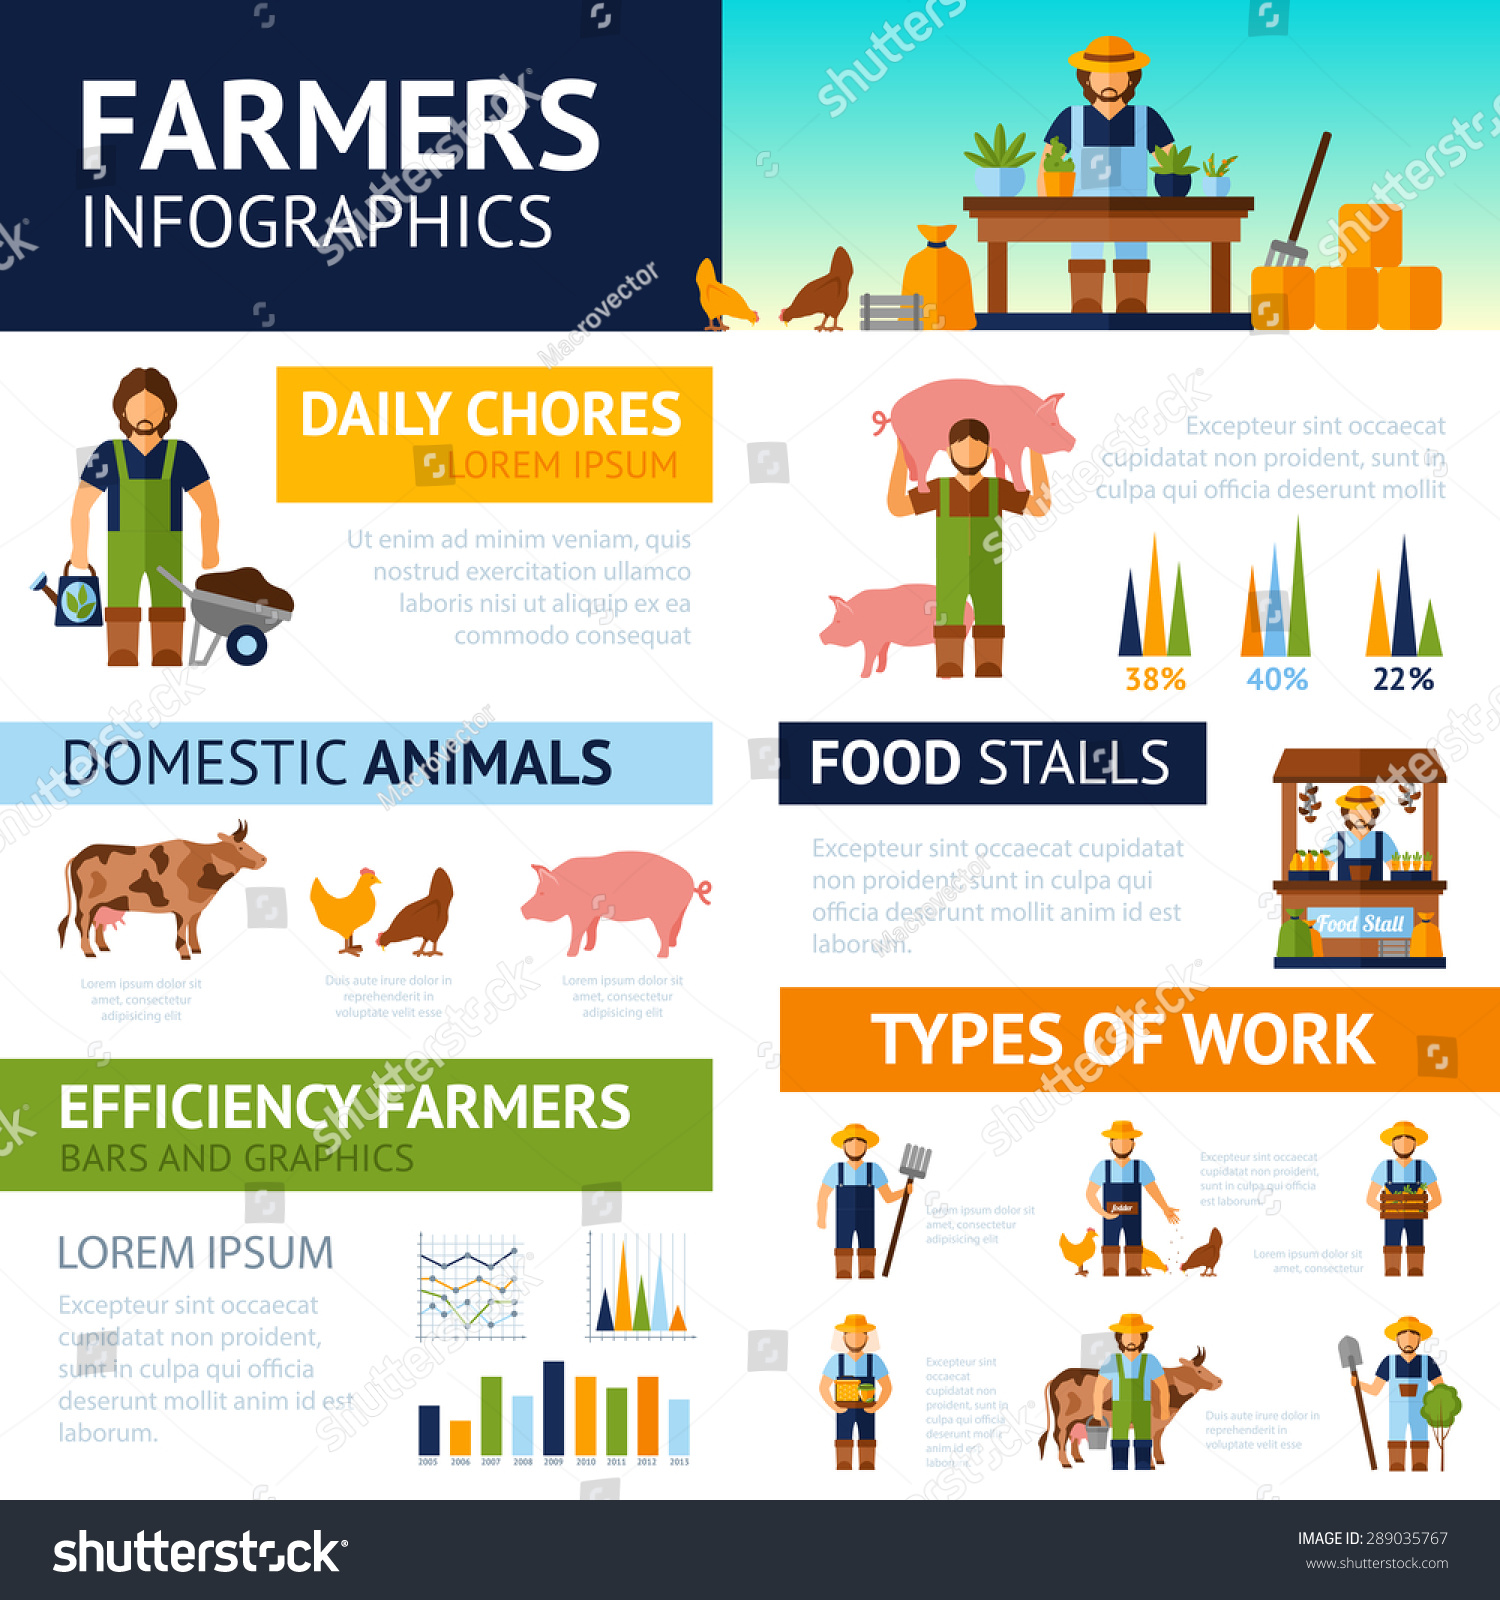 Sunedison stock symbol images symbols and meanings farmers infographics set domestic animals symbols stock vector farmers infographics set with domestic animals symbols and buycottarizona Choice Image